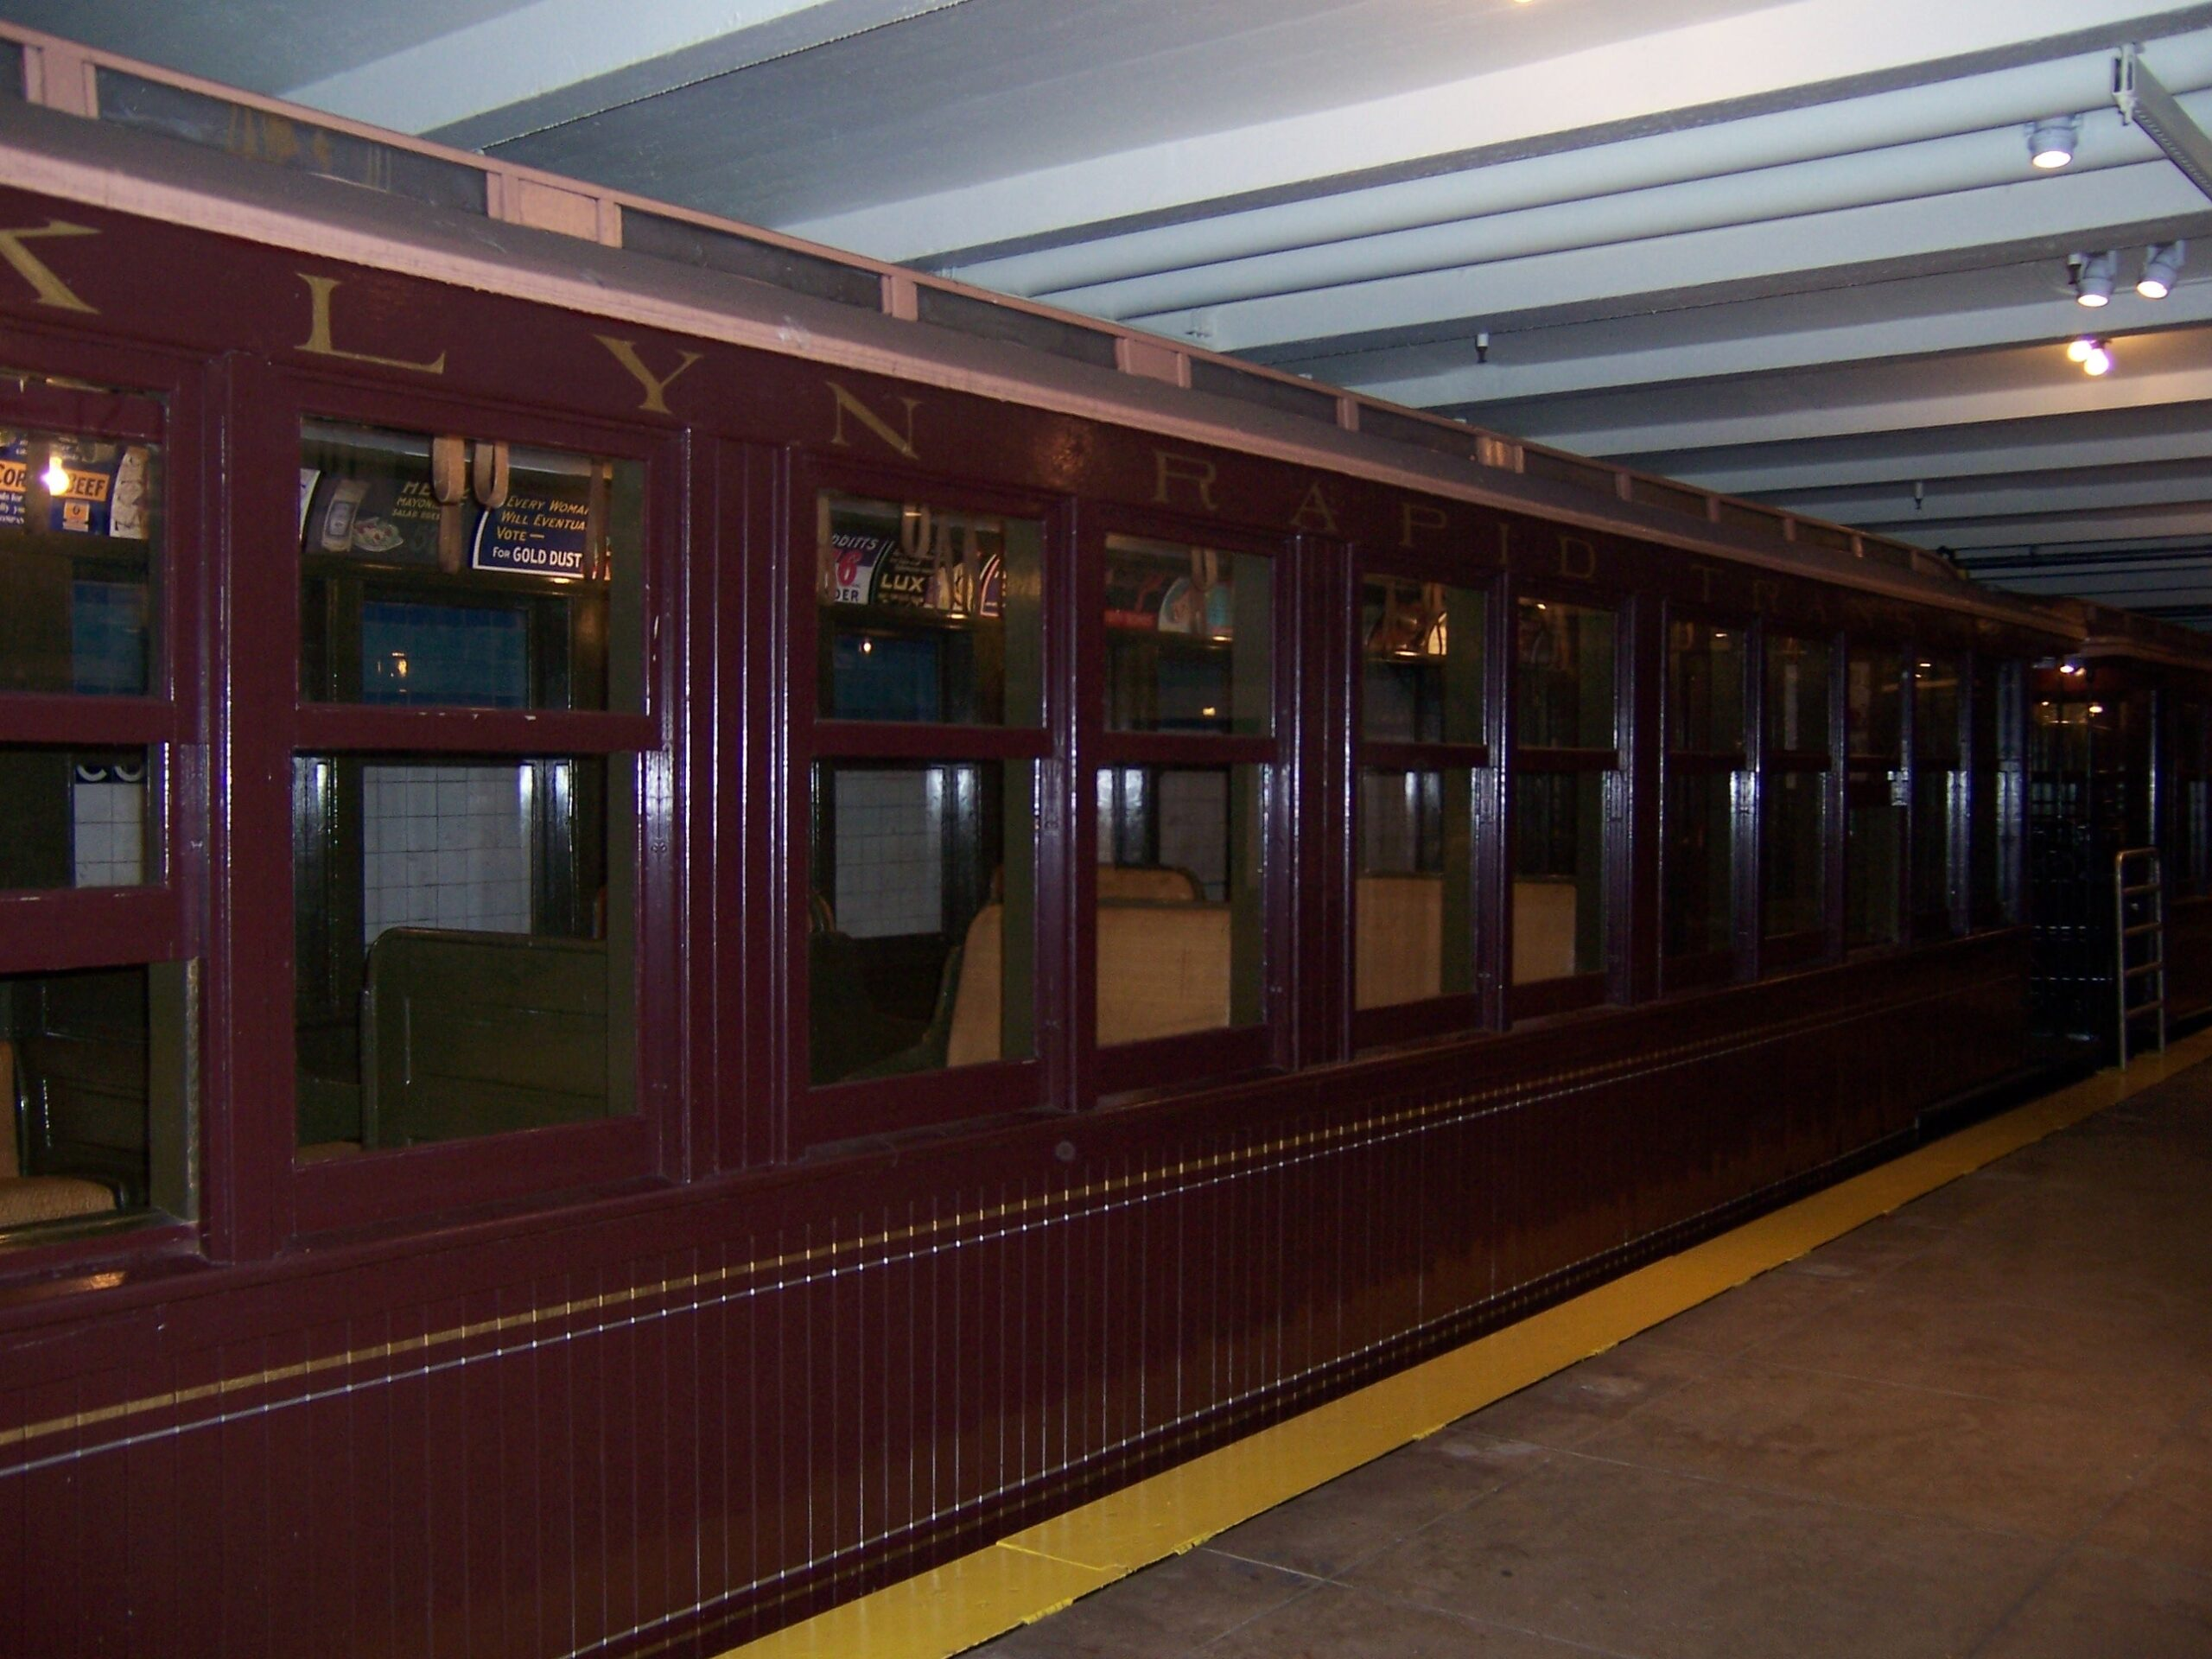 Wooden rail car in the New York Transit Museum in Brooklyn, NY